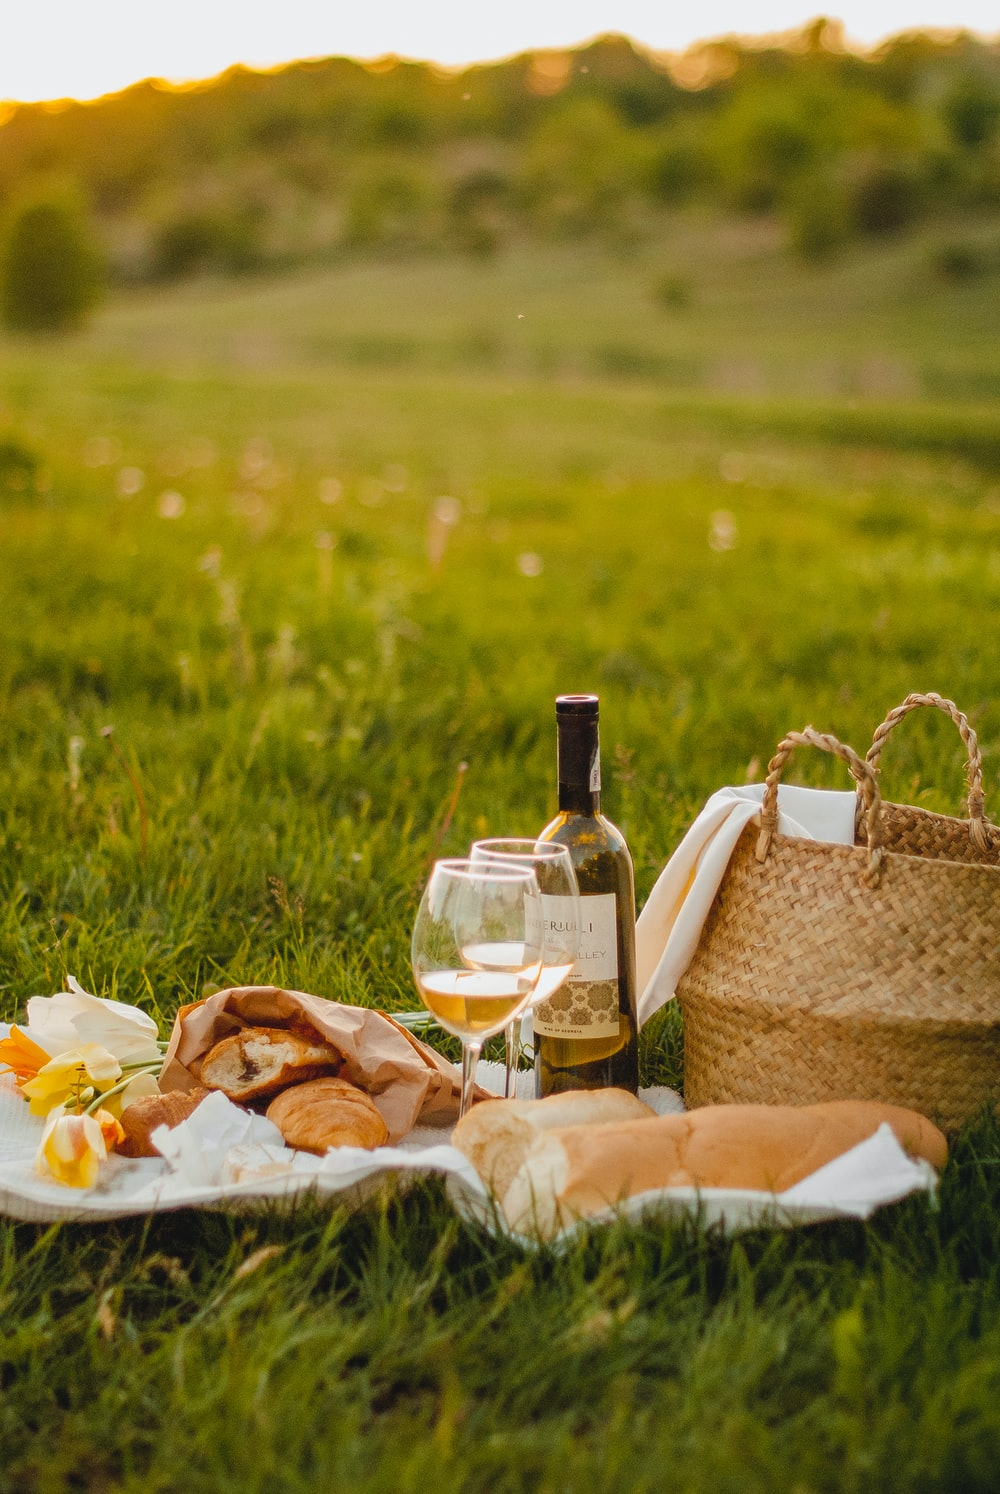 clear glass bottle beside brown wicker basket on green grass during daytime